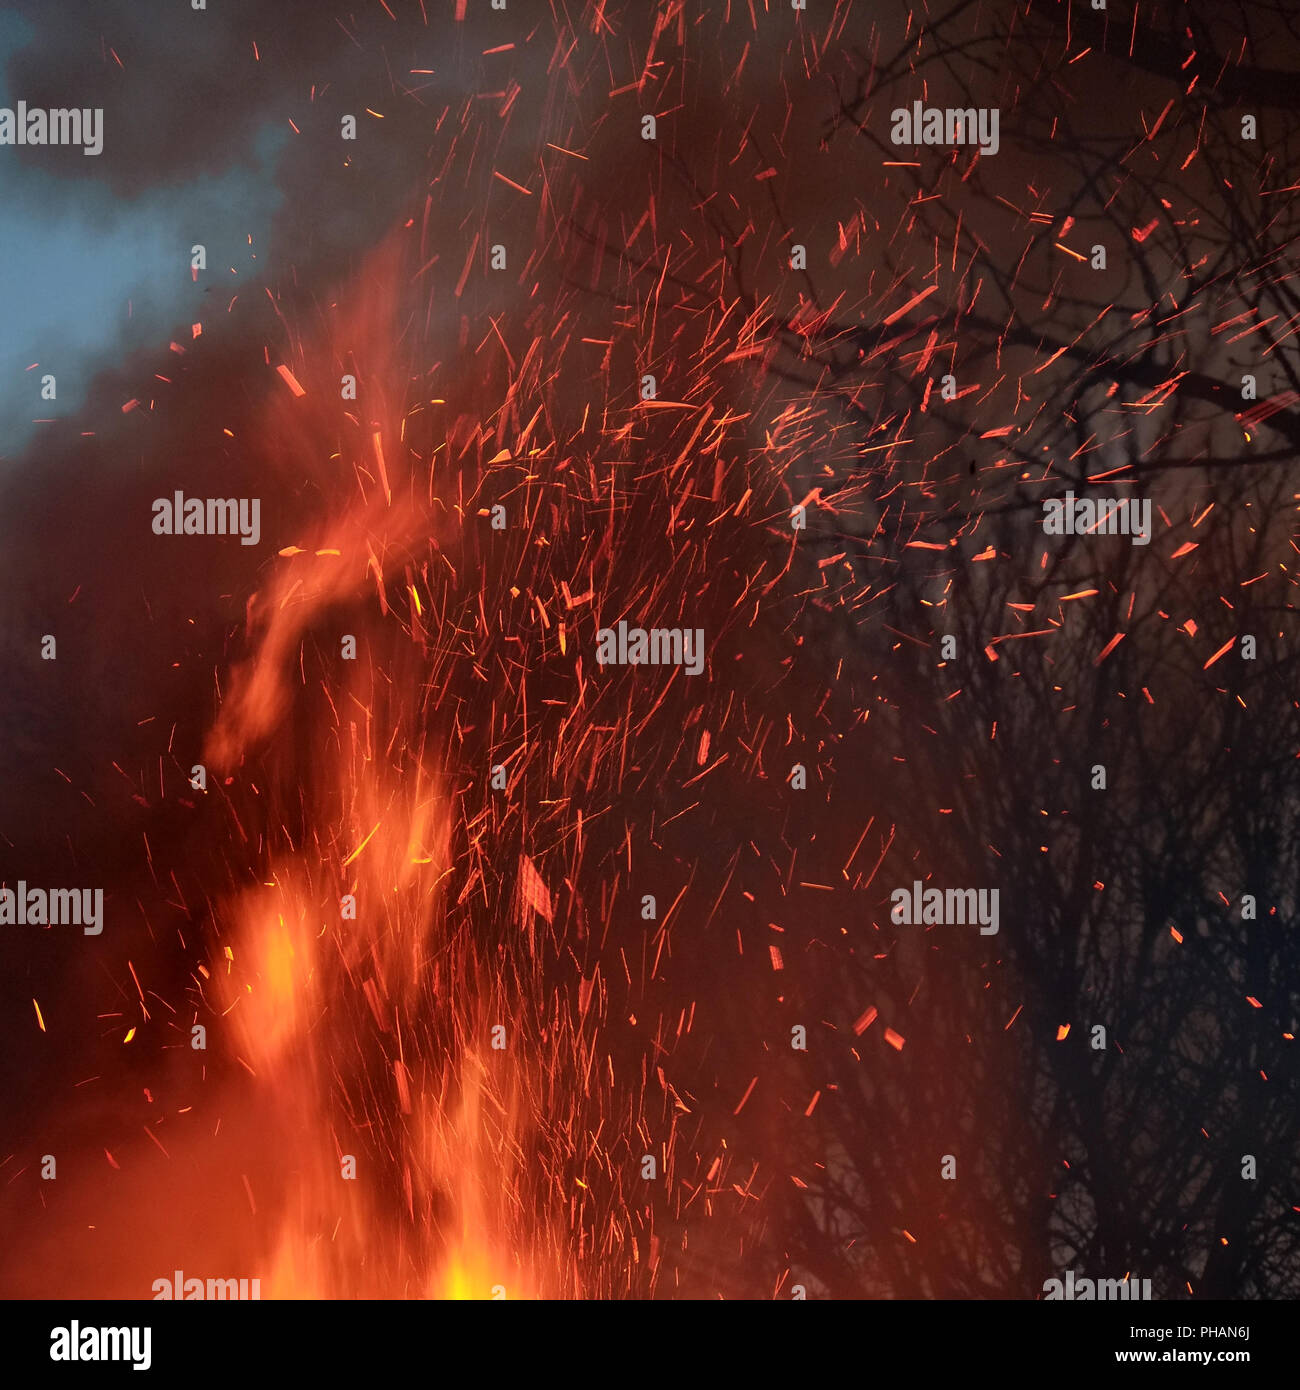 Conflagration, hellfire - Stock Image